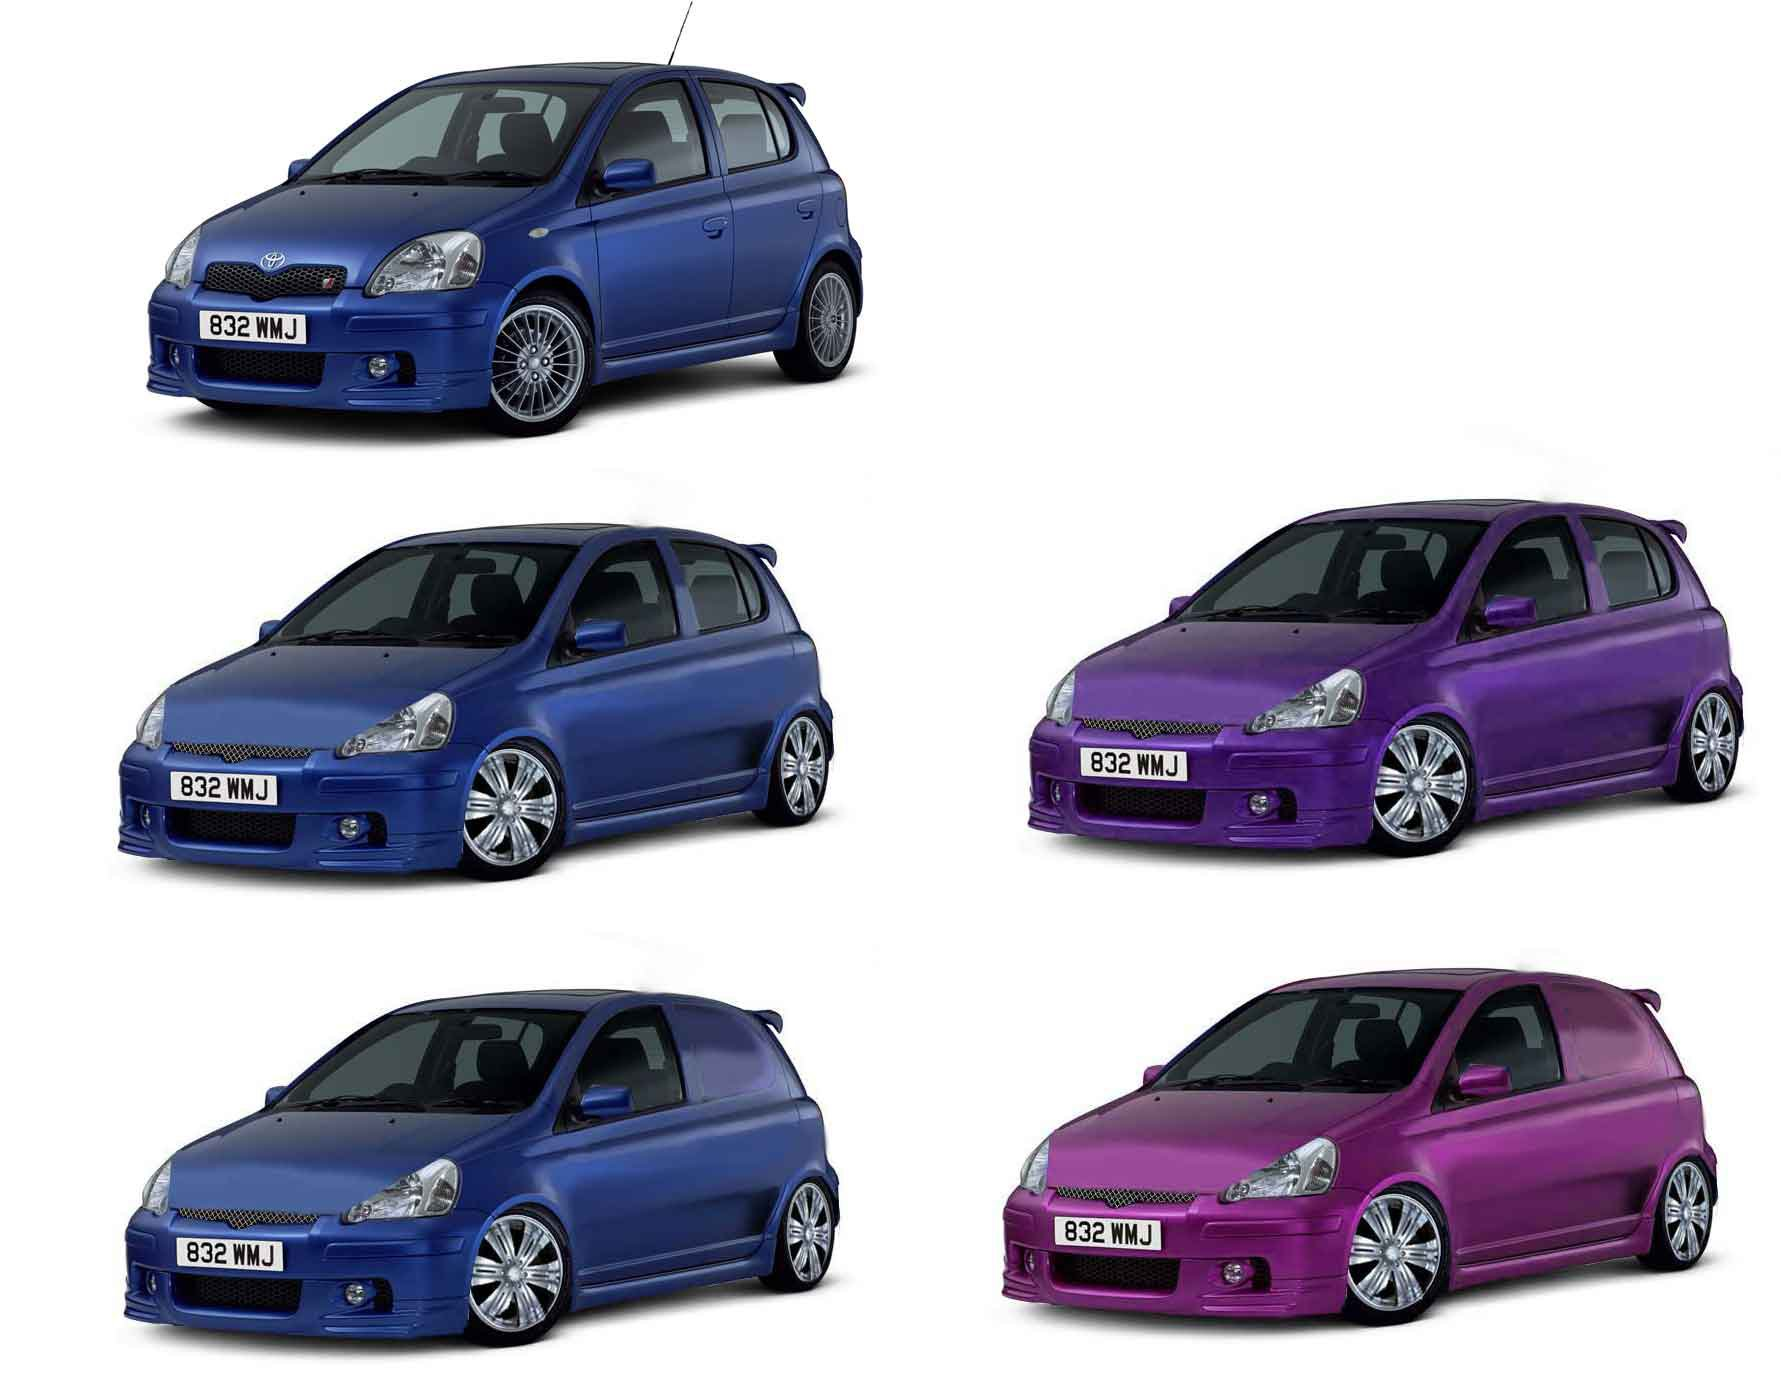 toyota yaris photoshopped by me. van and car conversions